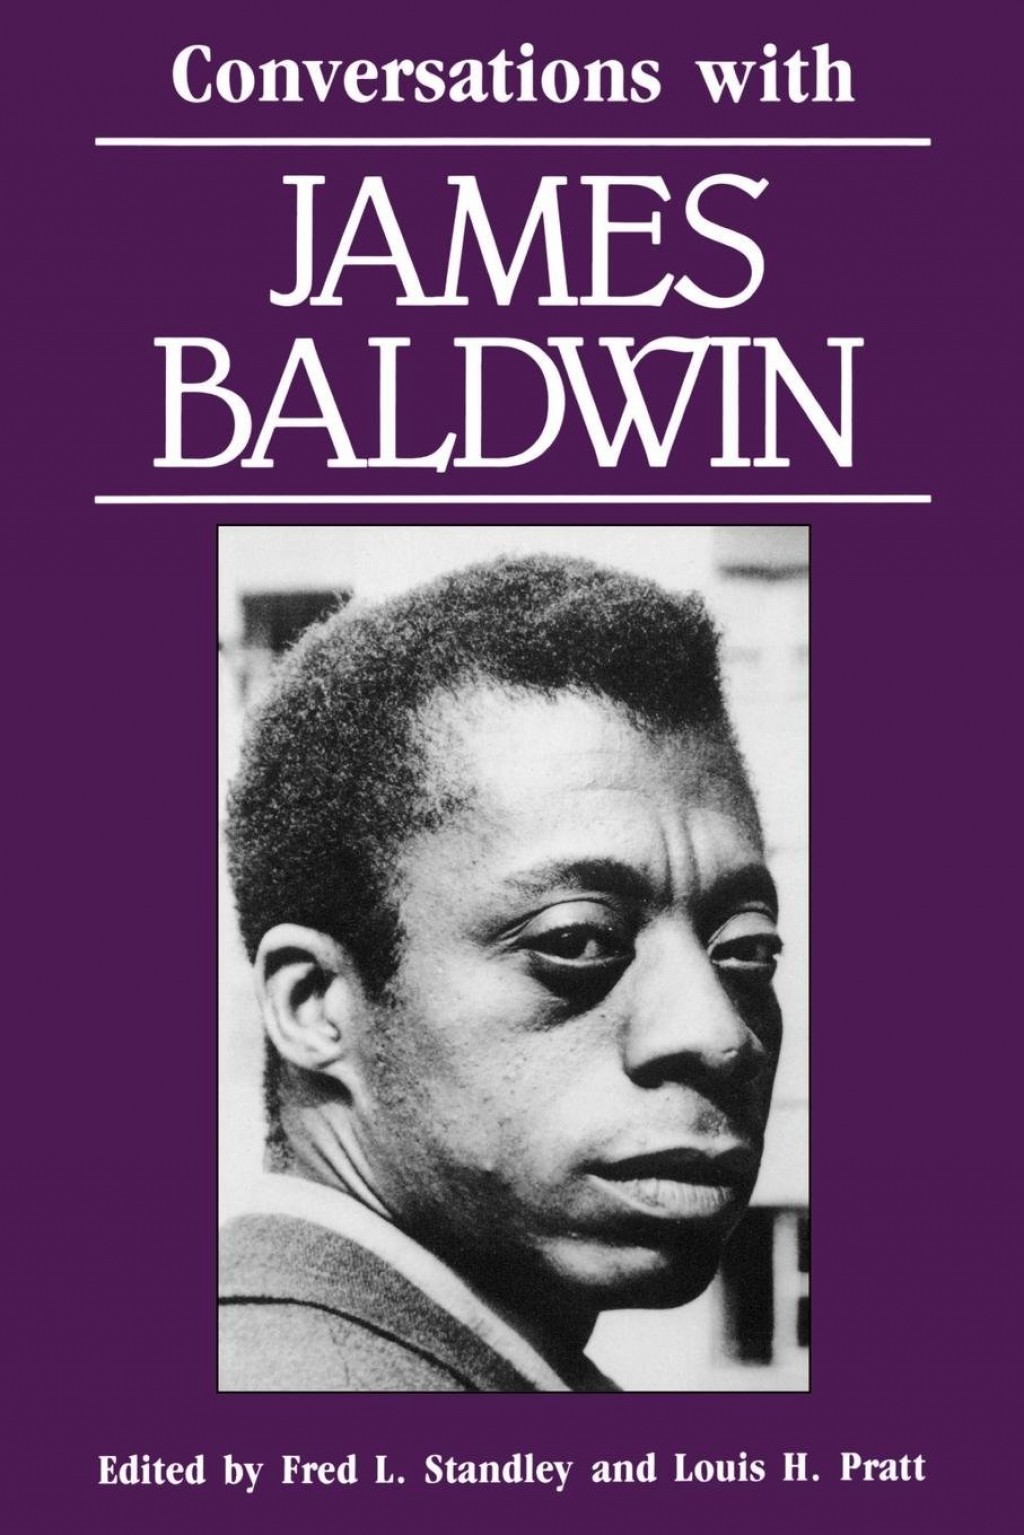 016 Essay Example 71a06nazfnl James Baldwin Collected Wondrous Essays Table Of Contents Ebook Google Books Large